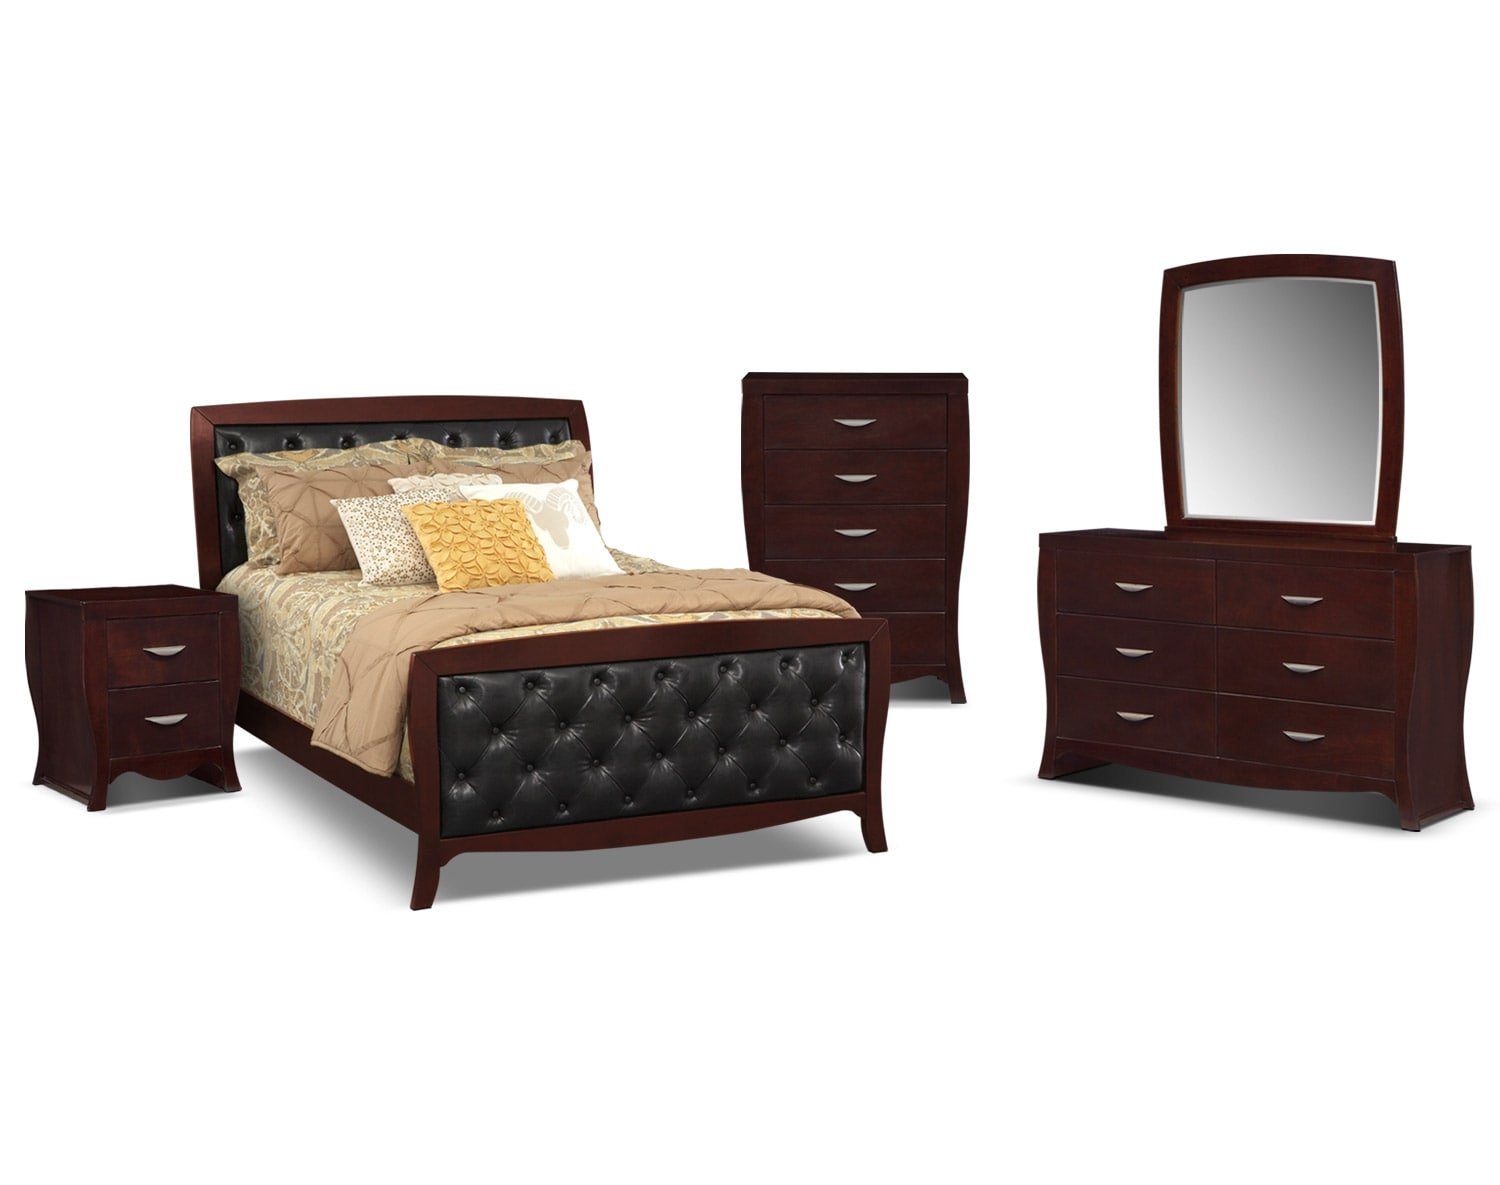 tufted bedroom collection merlot american signature furniture